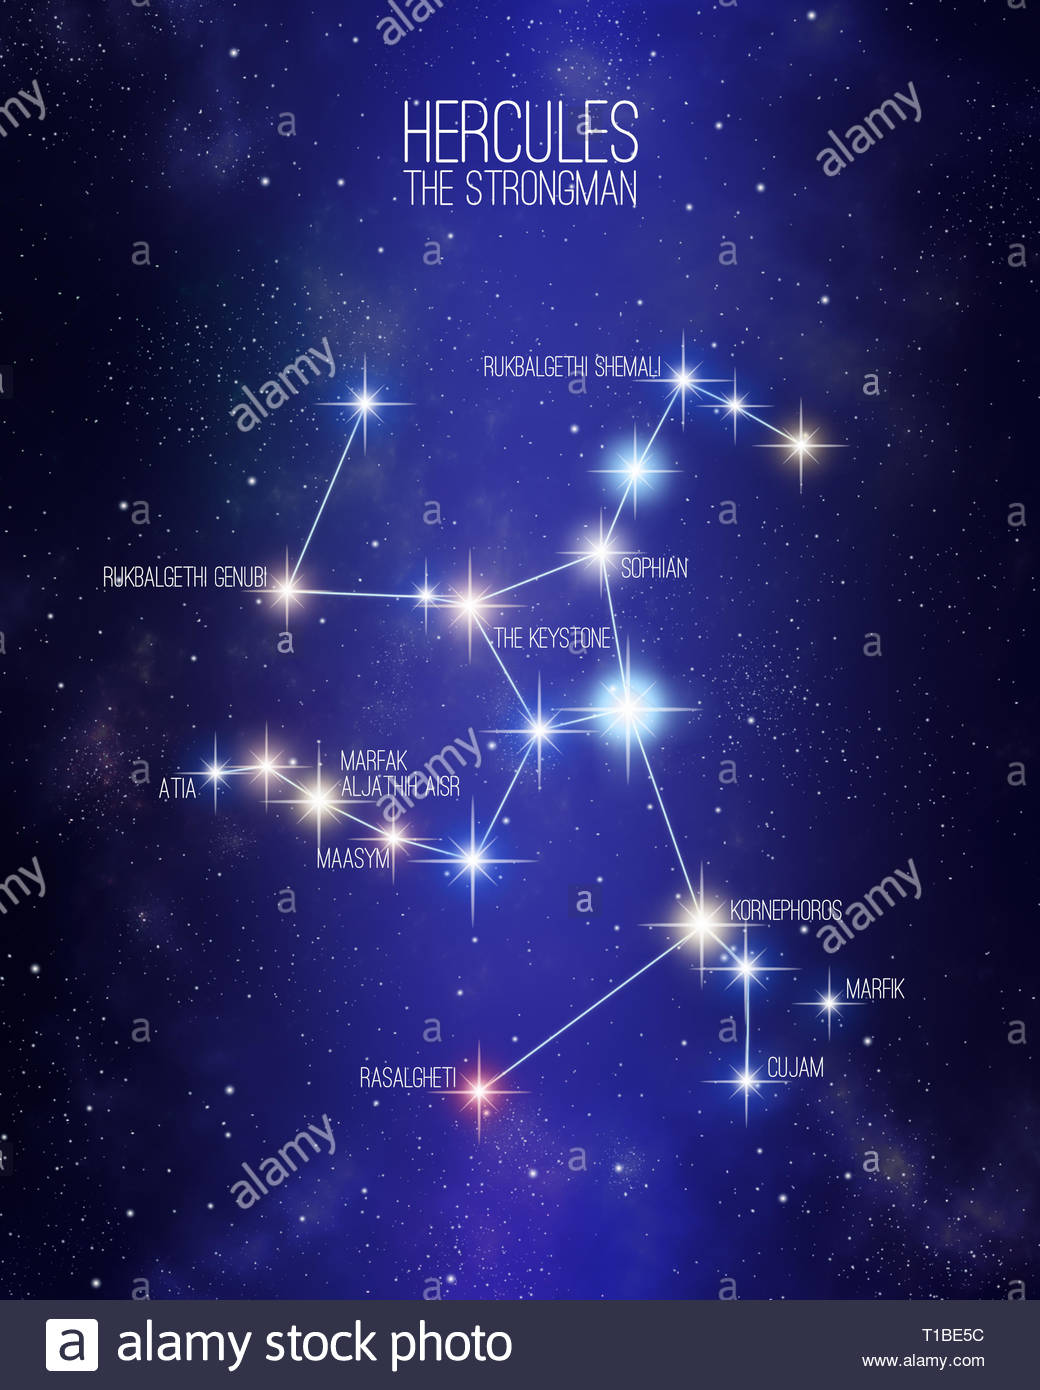 Hercules the strongman constellation on a starry space background 1040x1390